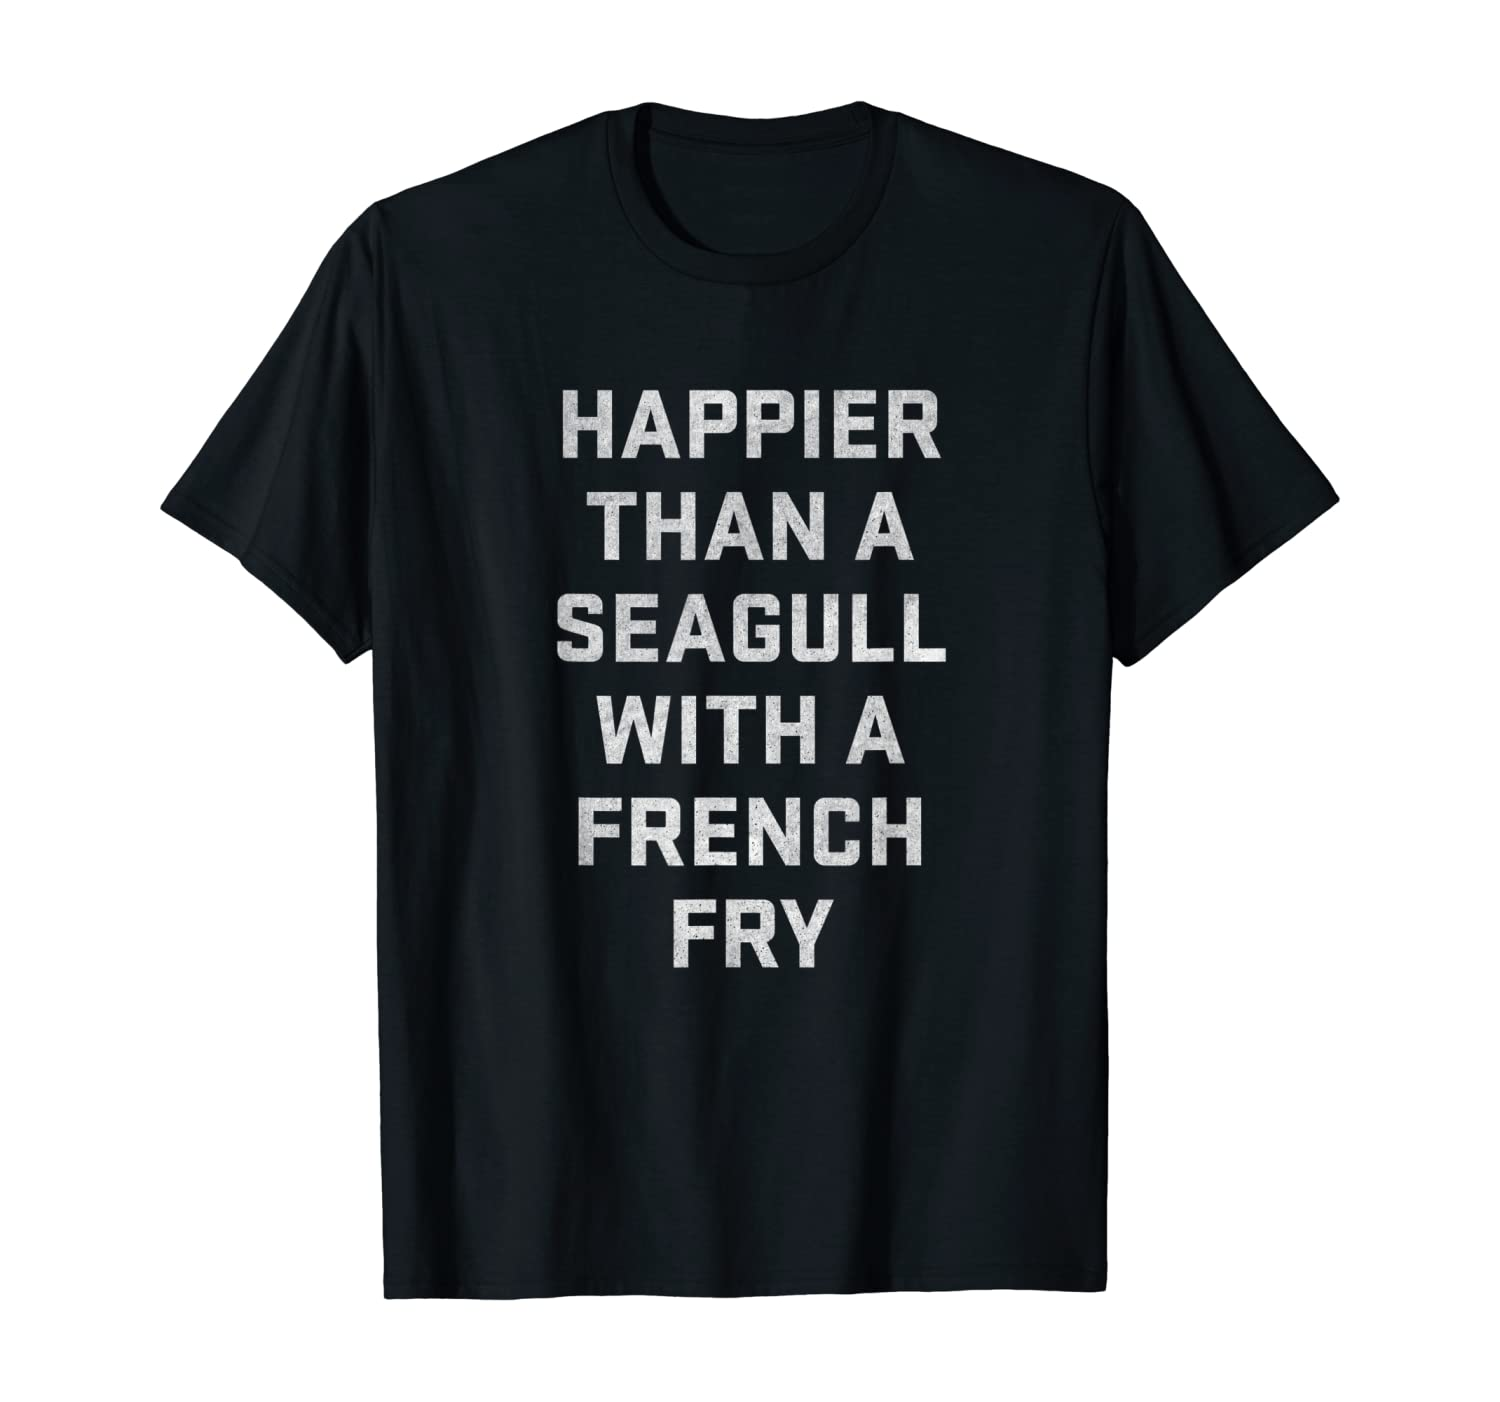 Happier Than A Seagull French Fry Funny Gift Cool Cute Edgy Ladies Tee Shirt T